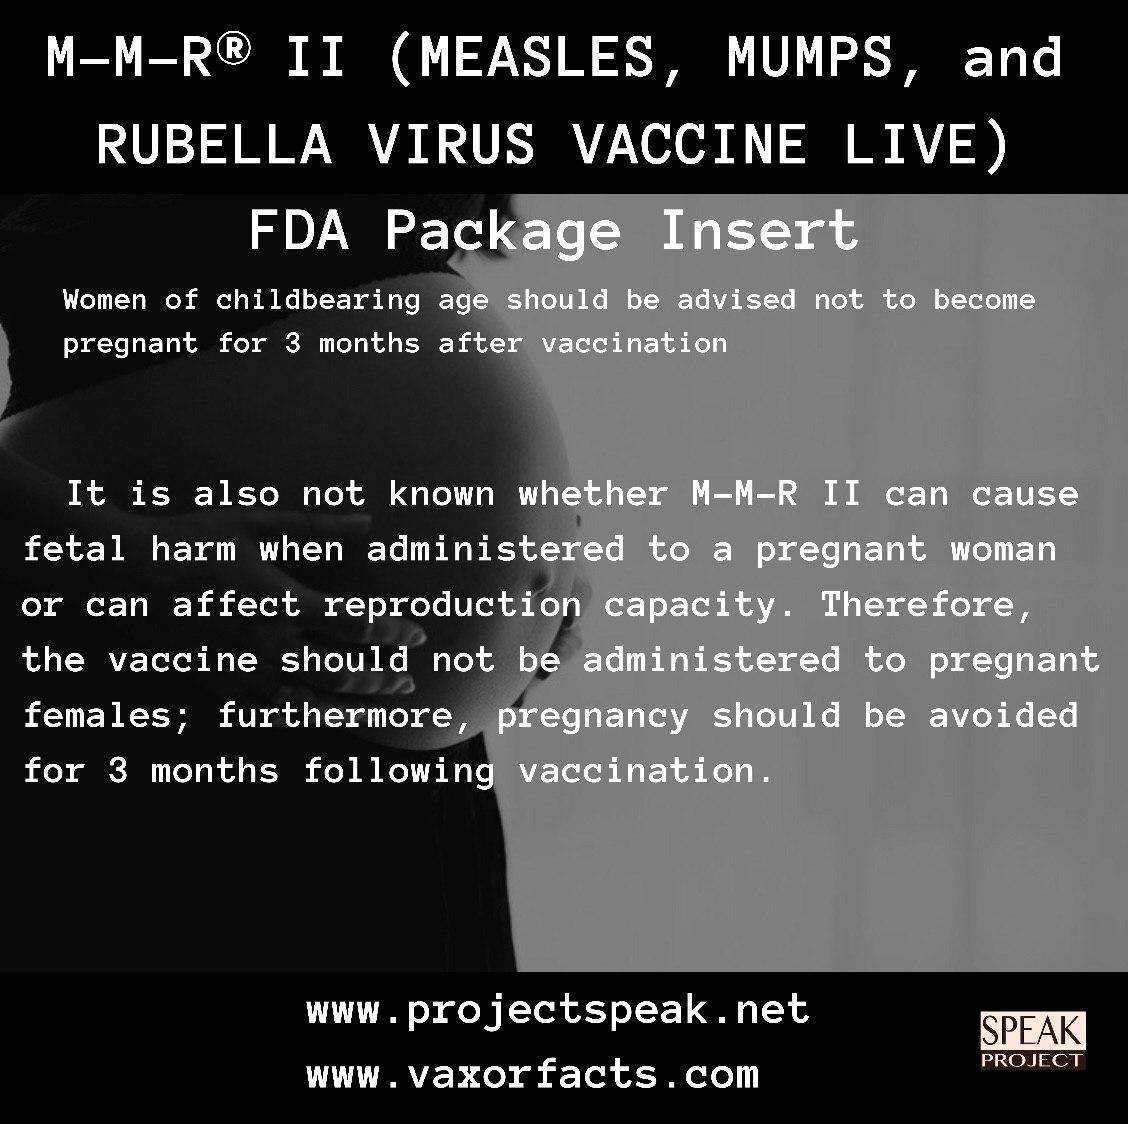 MMR II - MEASLES, MUMPS AND RUBELLA VIRU